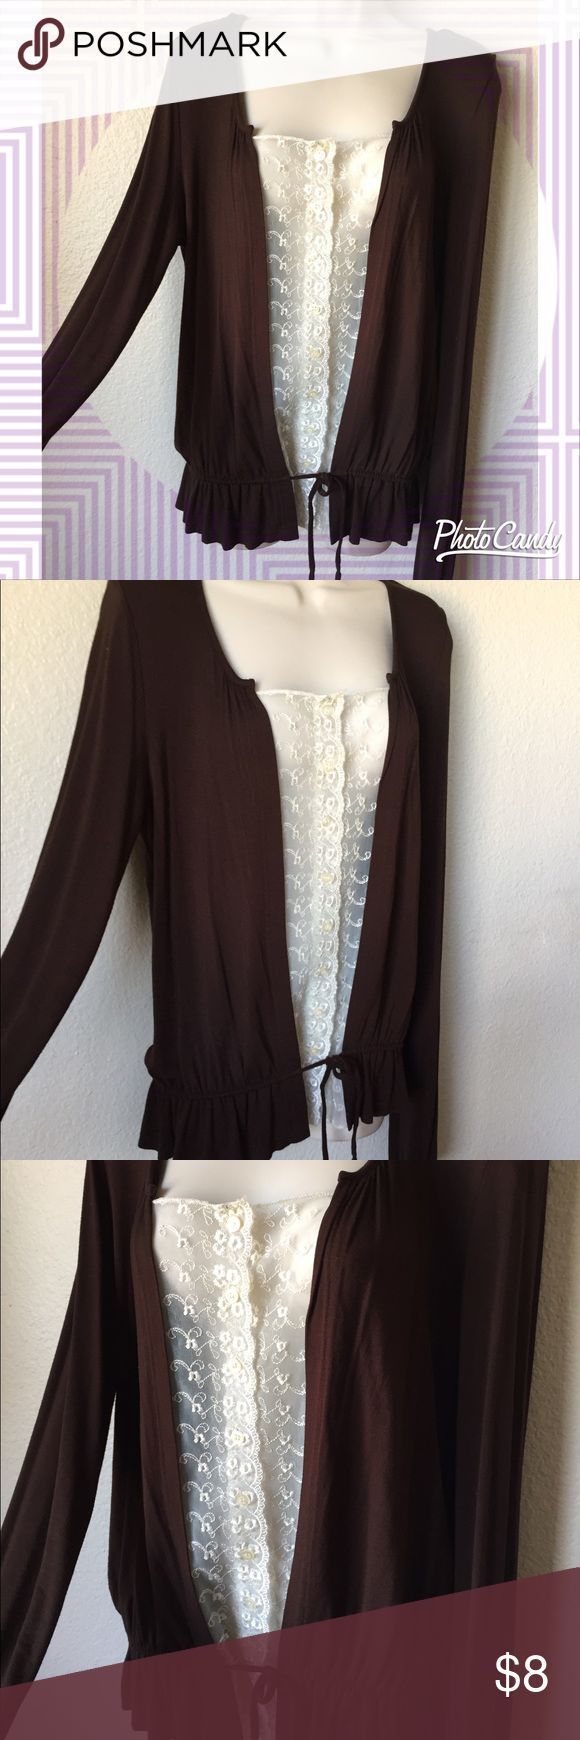 Brown and cream long sleeved top! I love this top! Very cute and has a boho feel and is comfy and lightweight... has a sheer lacy details down the middle with functional buttons as well as a drawstring bottom.. great condition! Size medium Tops Tunics